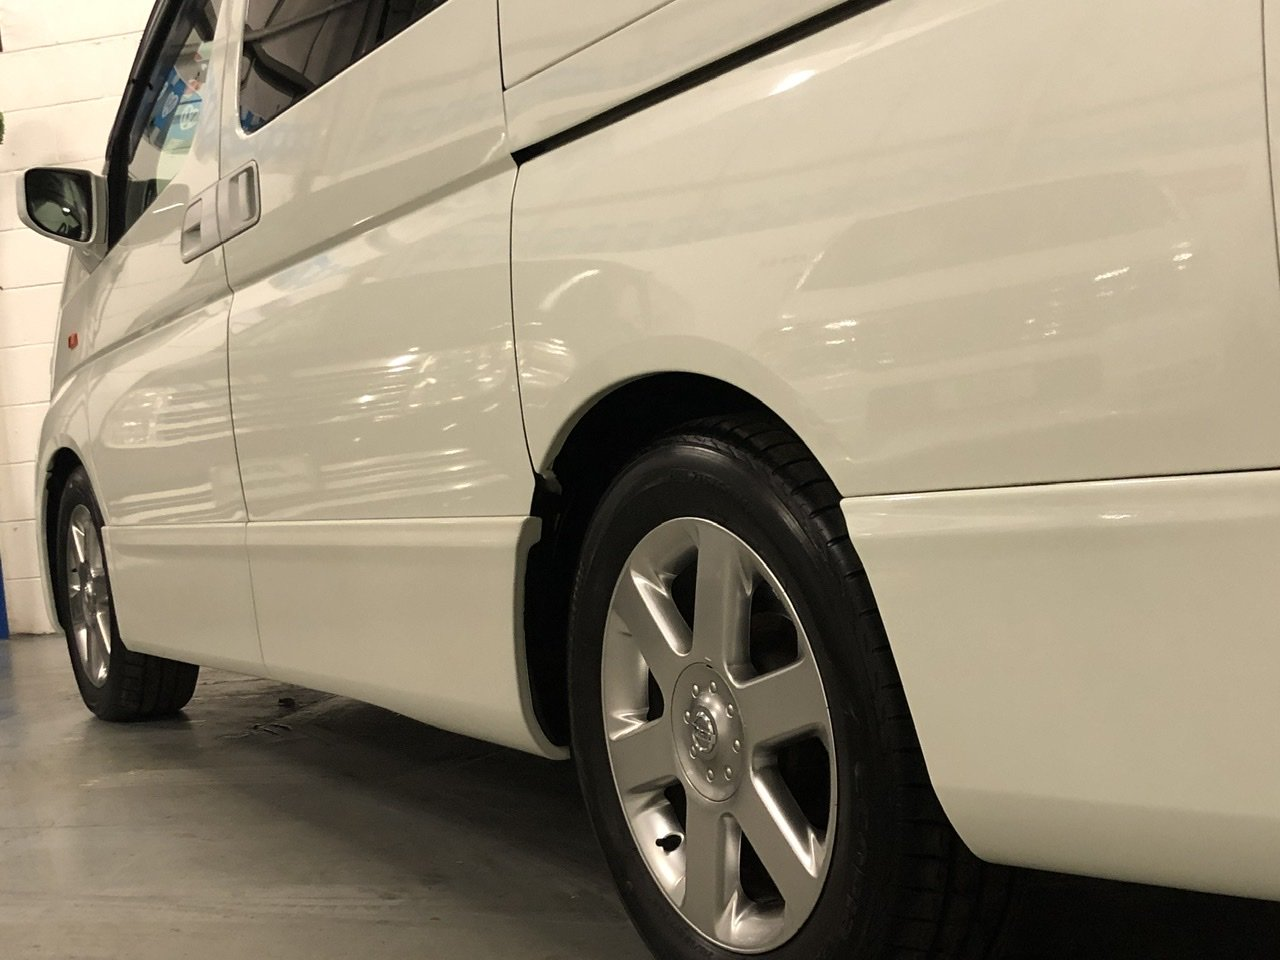 2004 NISSAN ELGRAND E51 3.5 V6 HIGHWAY STAR, White, 8 Seater MPV For Sale (picture 2 of 6)